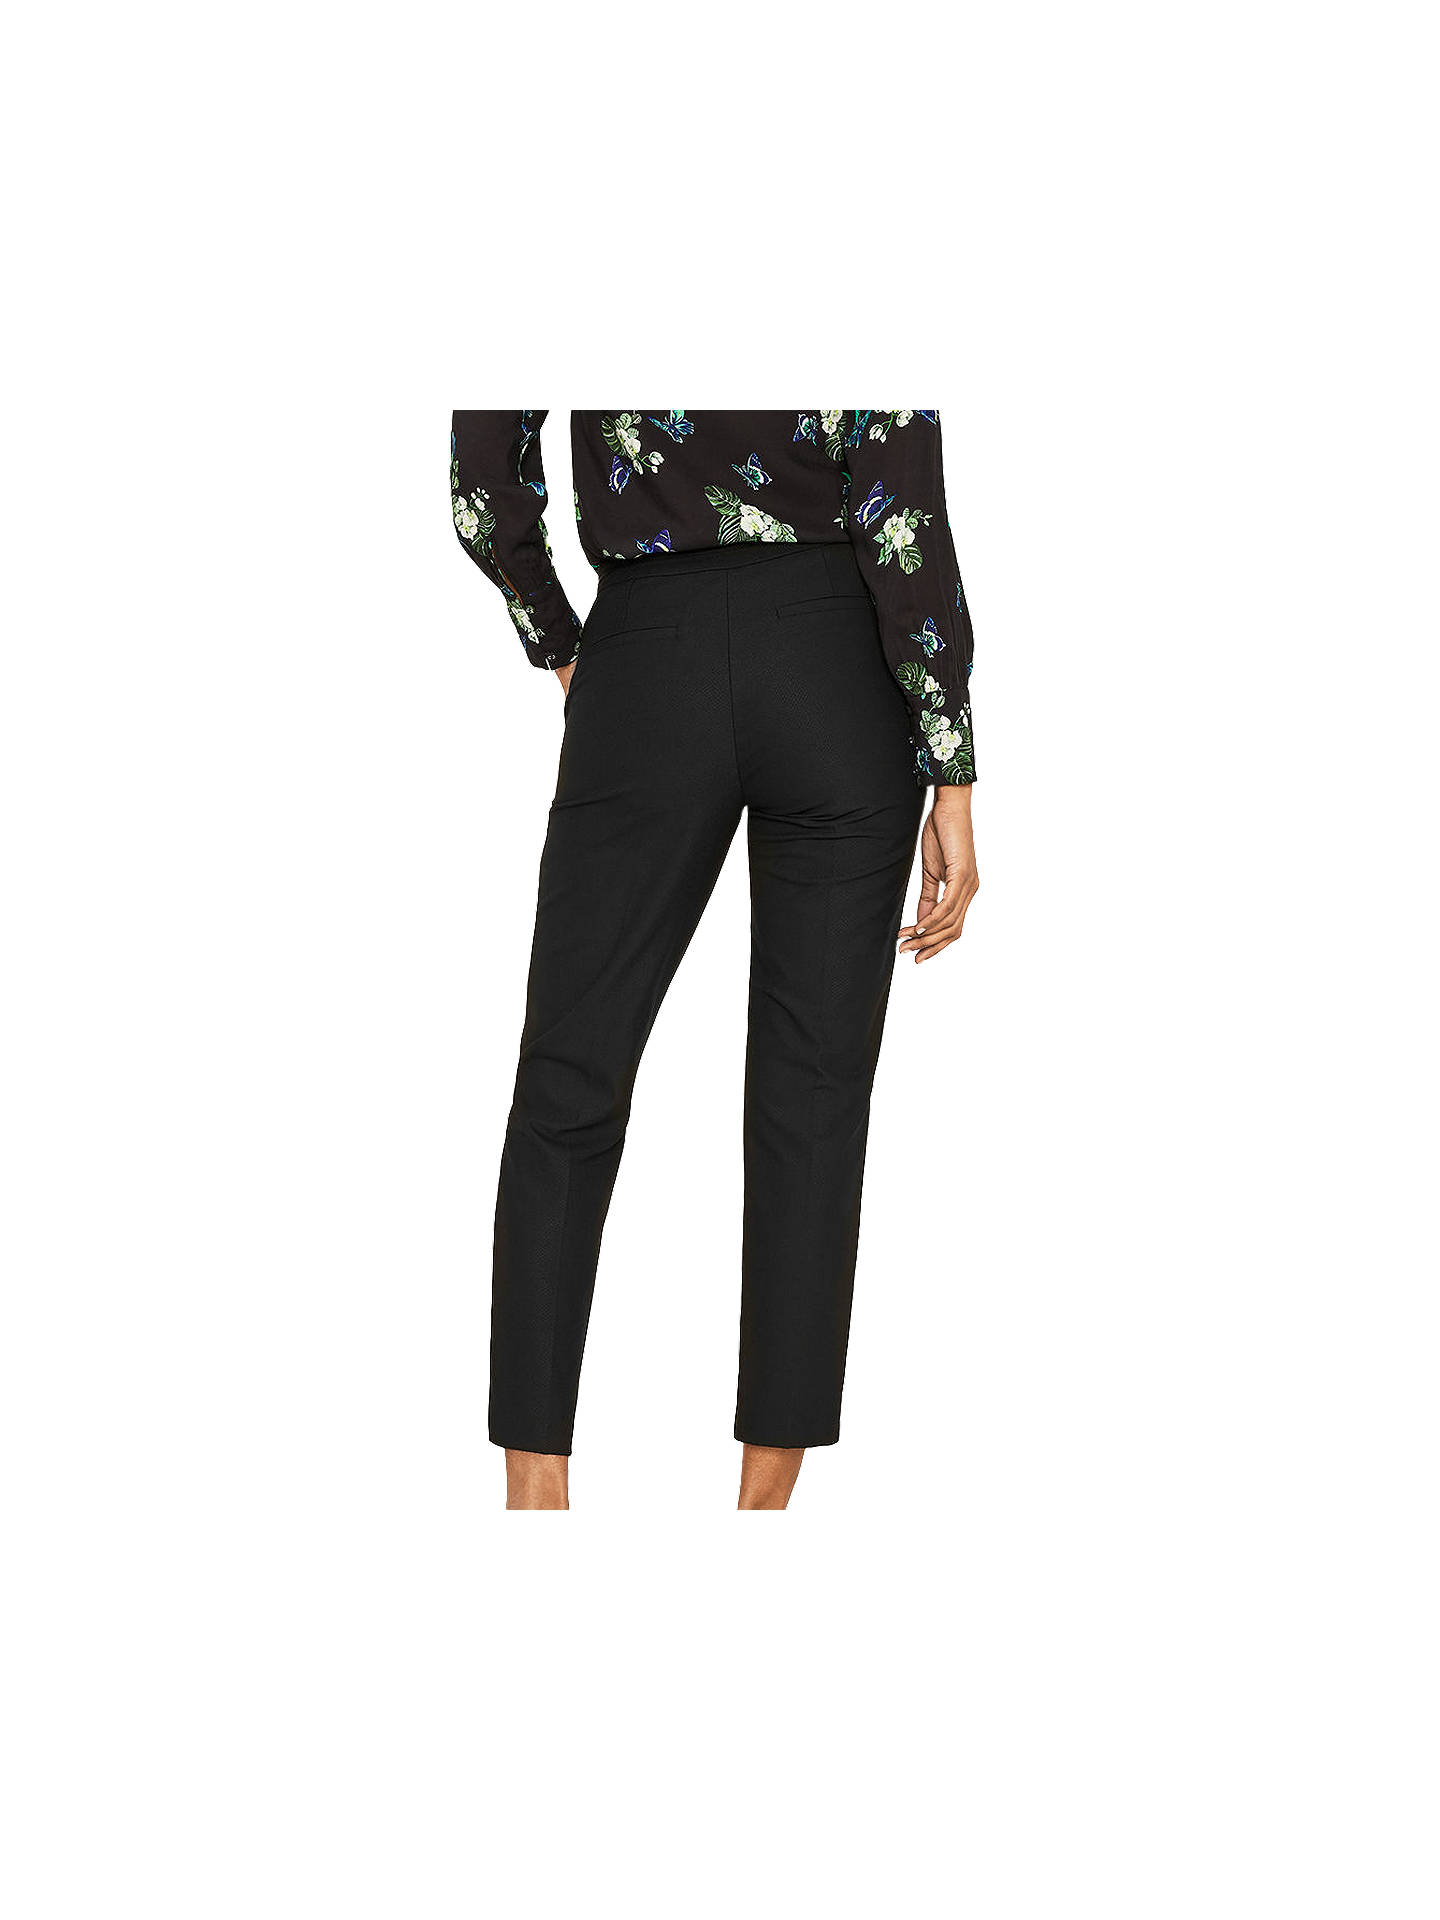 50d604385eb2 ... Buy Oasis Camilla Split Detail Trousers, Black, 6 Online at  johnlewis.com ...